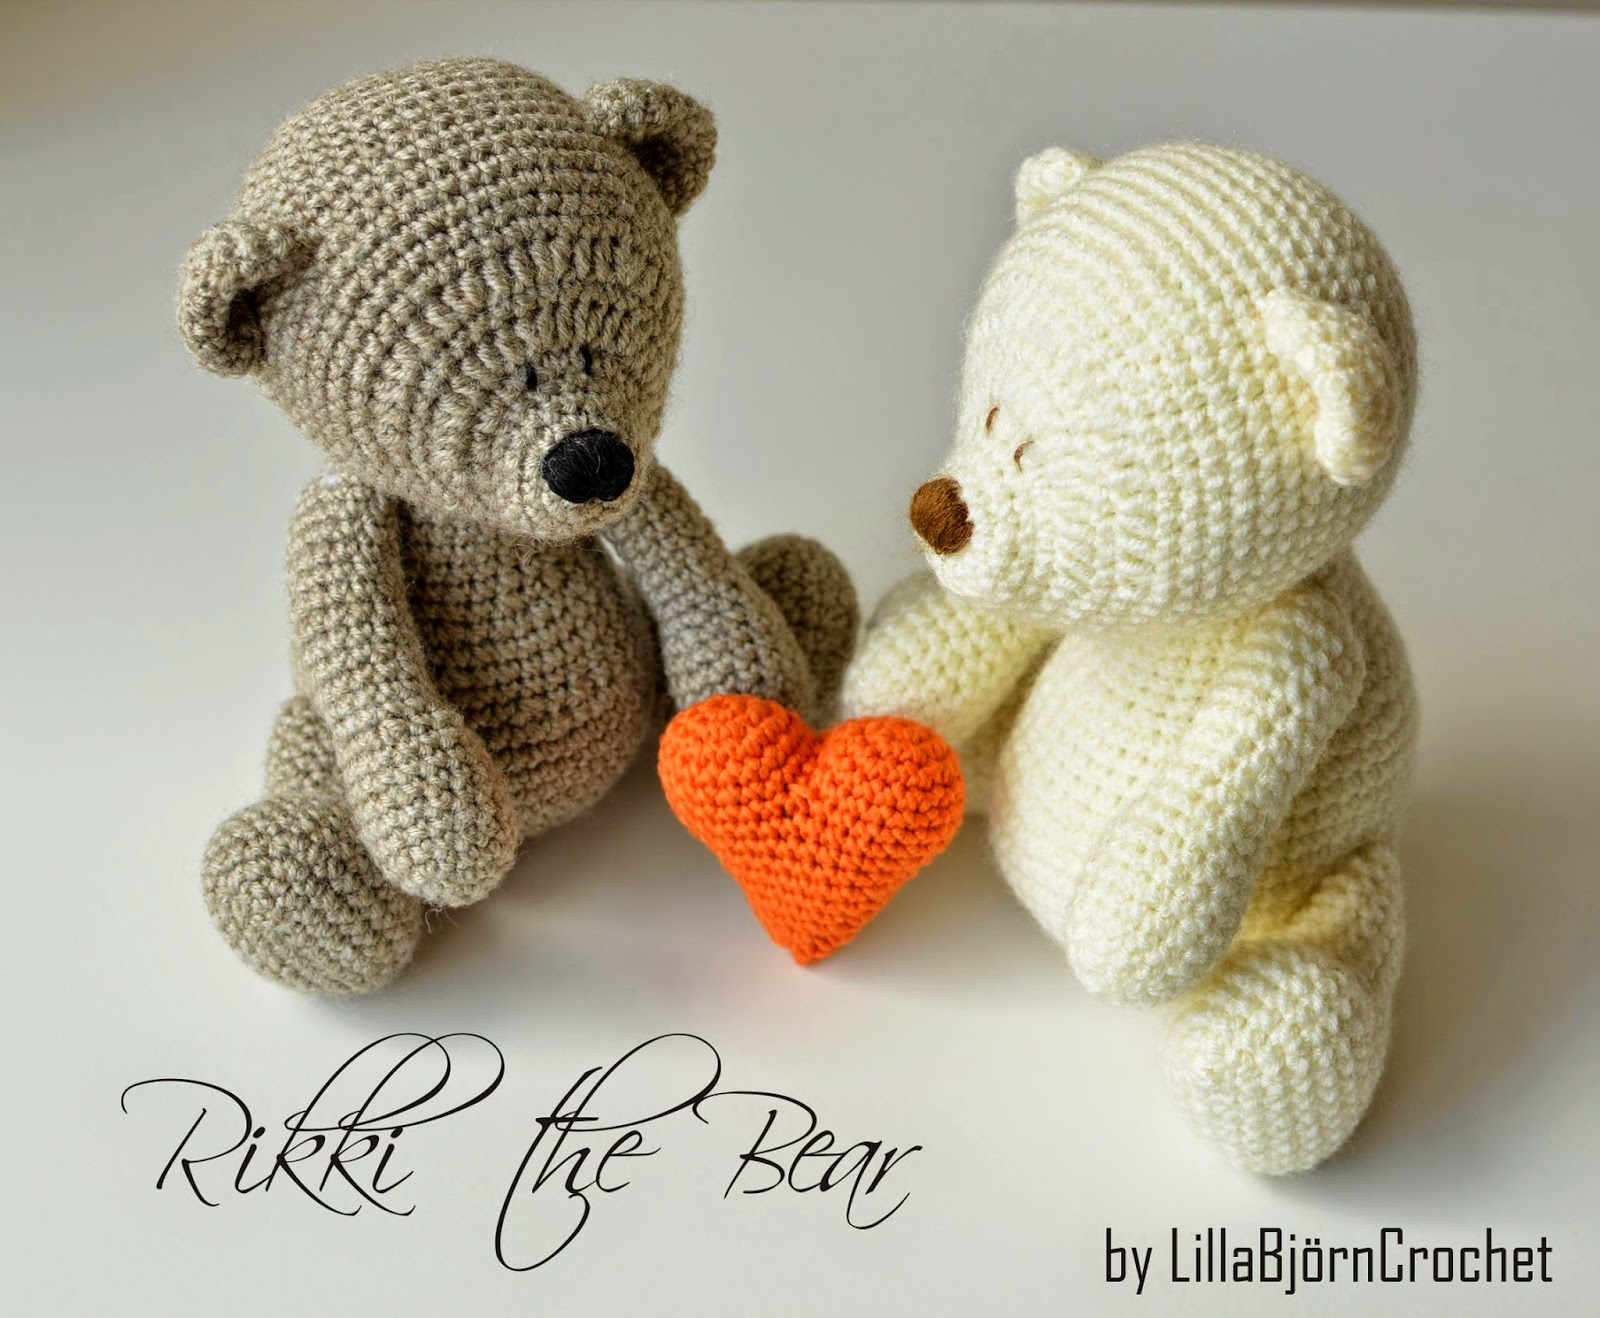 Amigurumi Teddy Bear Free Patterns : Free heart pattern and my rikki bear lillabjörn's crochet world